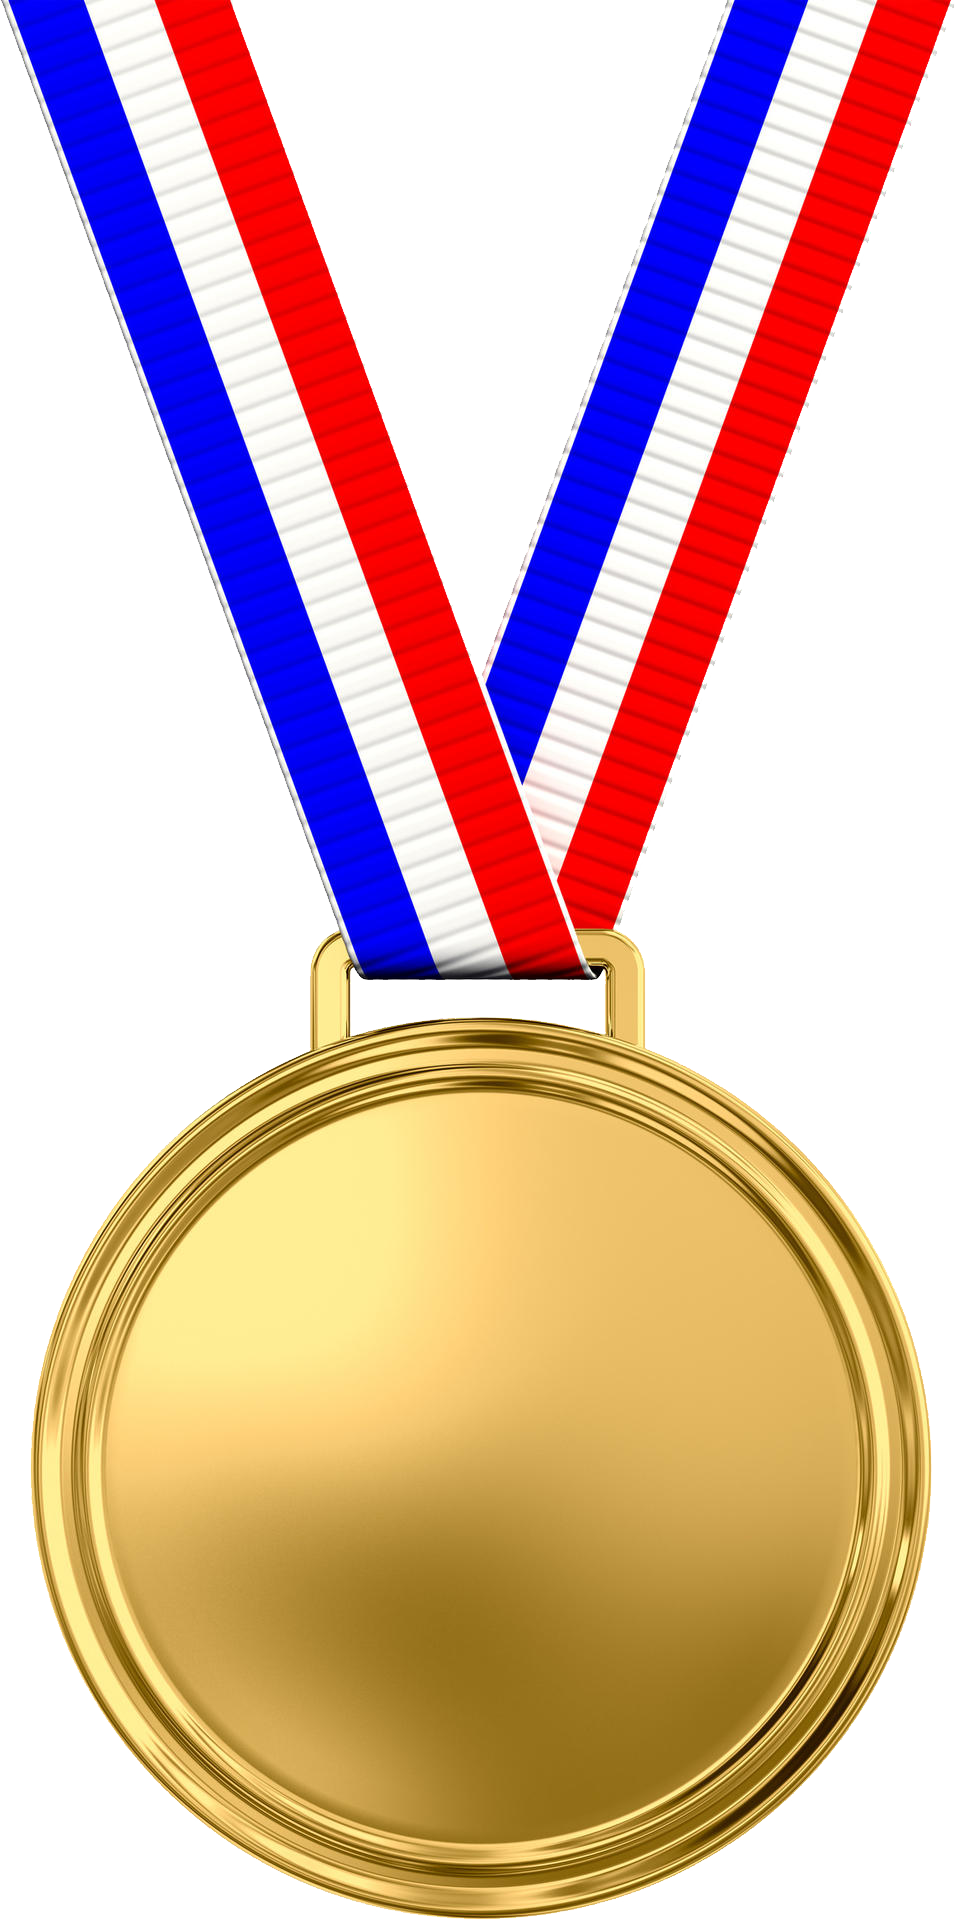 jpg royalty free stock Gold Medal PNG Image